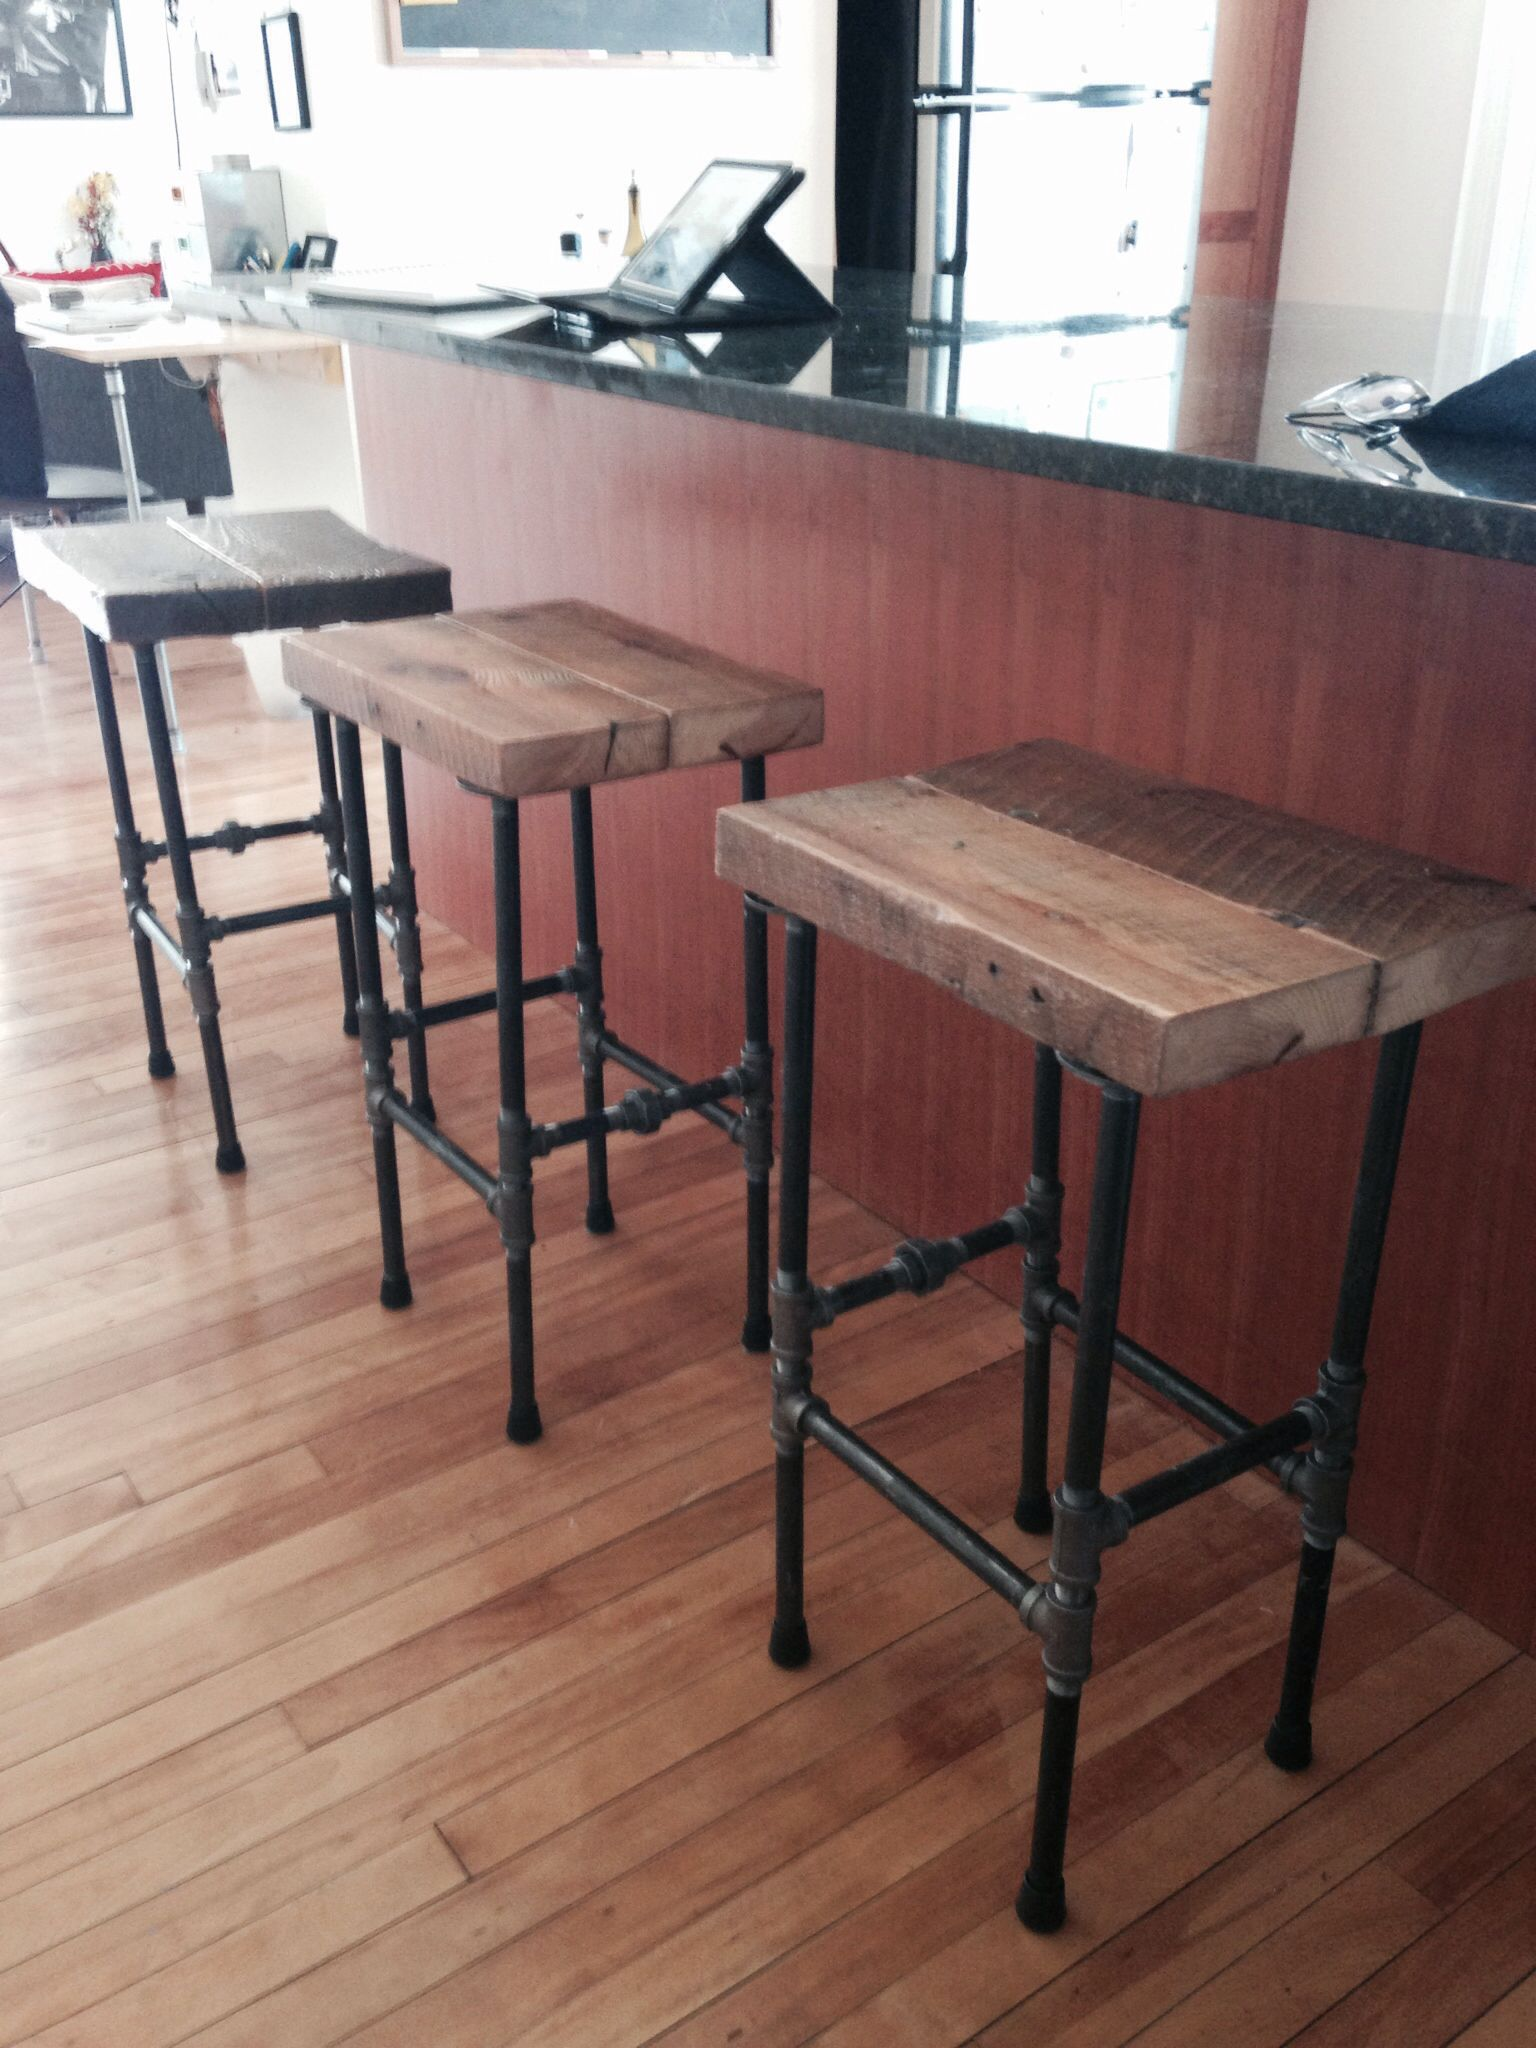 Stools i made with pipe and reclaimed wood barhockerund for Barhocker diy